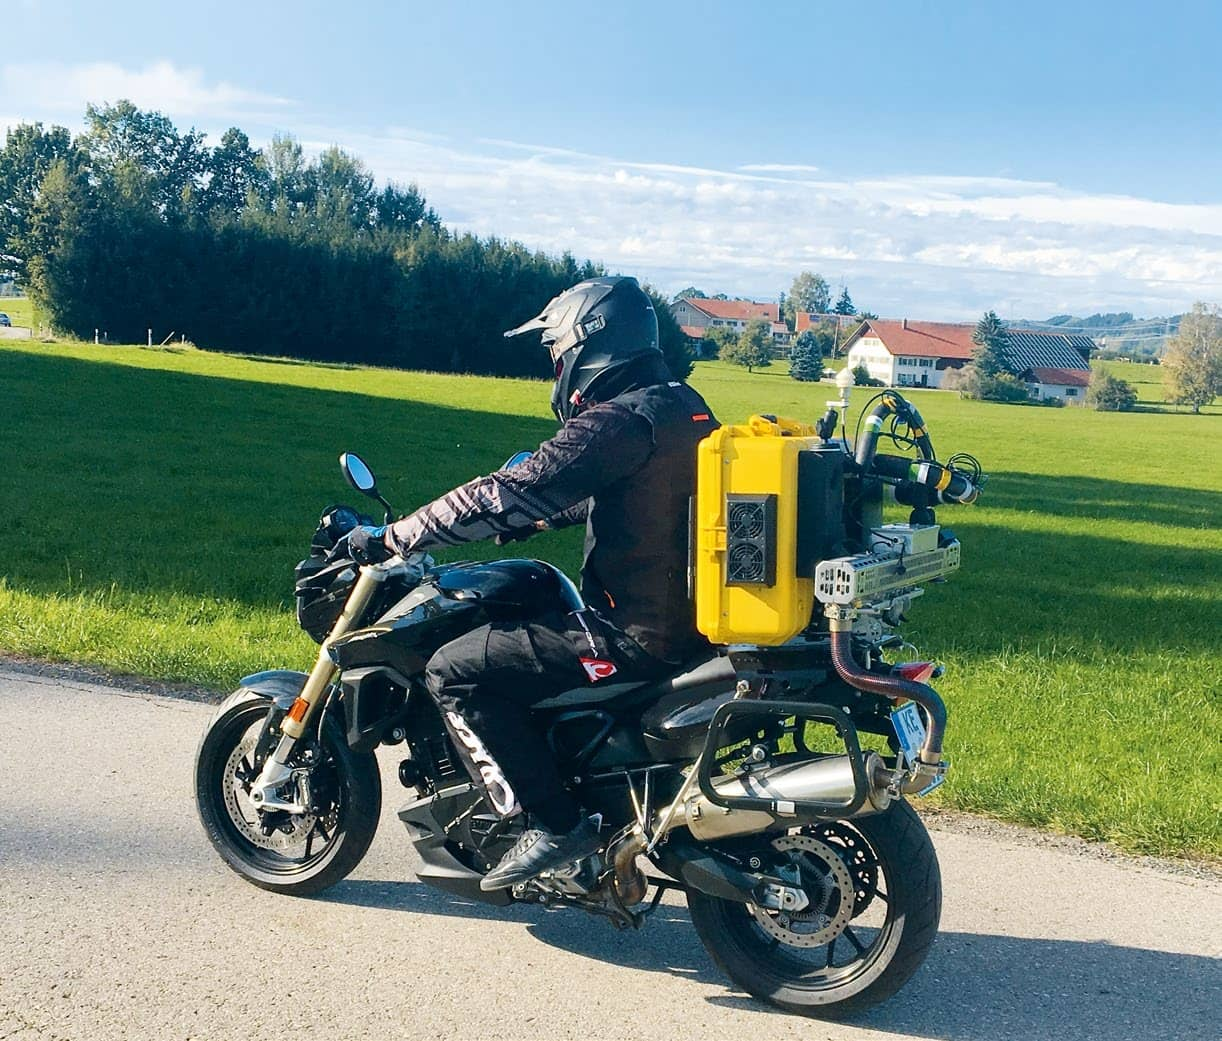 PEMS, RDE ON MOTORCYCLES AS INSTRUMENTS FOR FUTURE CHALLENGES